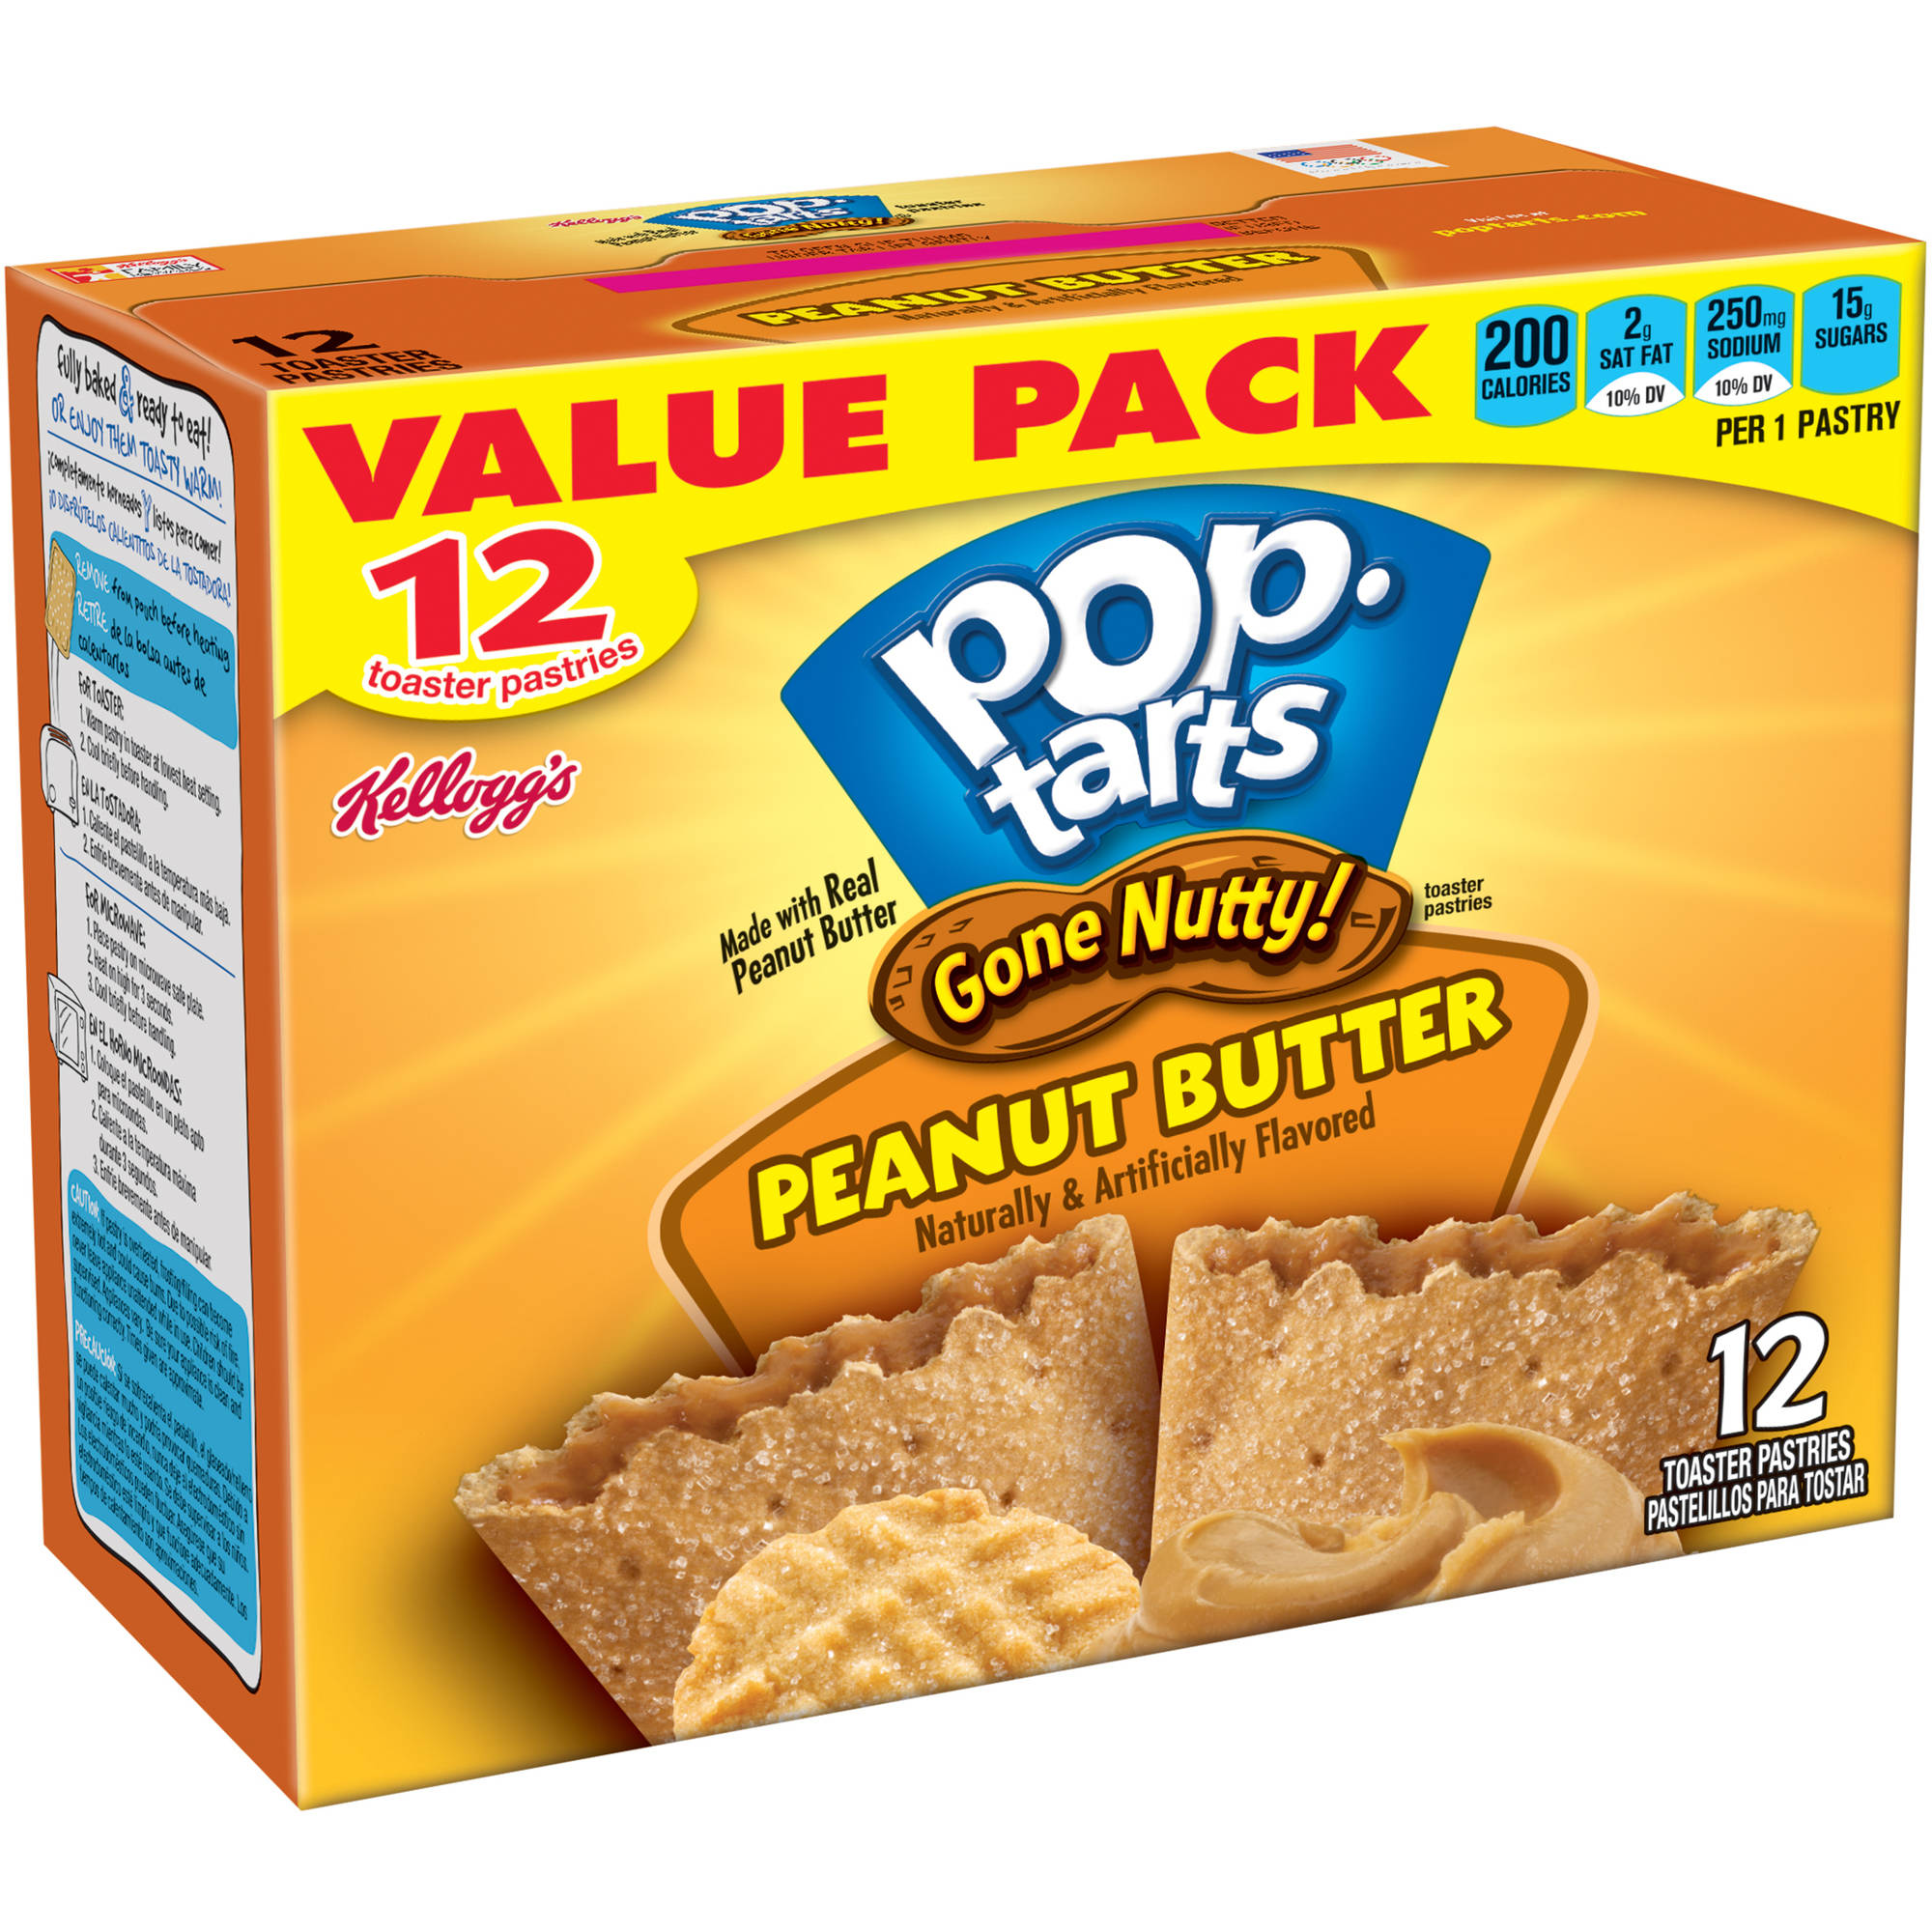 Kellogg's Pop-Tarts Gone Nutty! Peanut Butter Toaster Pastries, 12 count, 21.1 oz